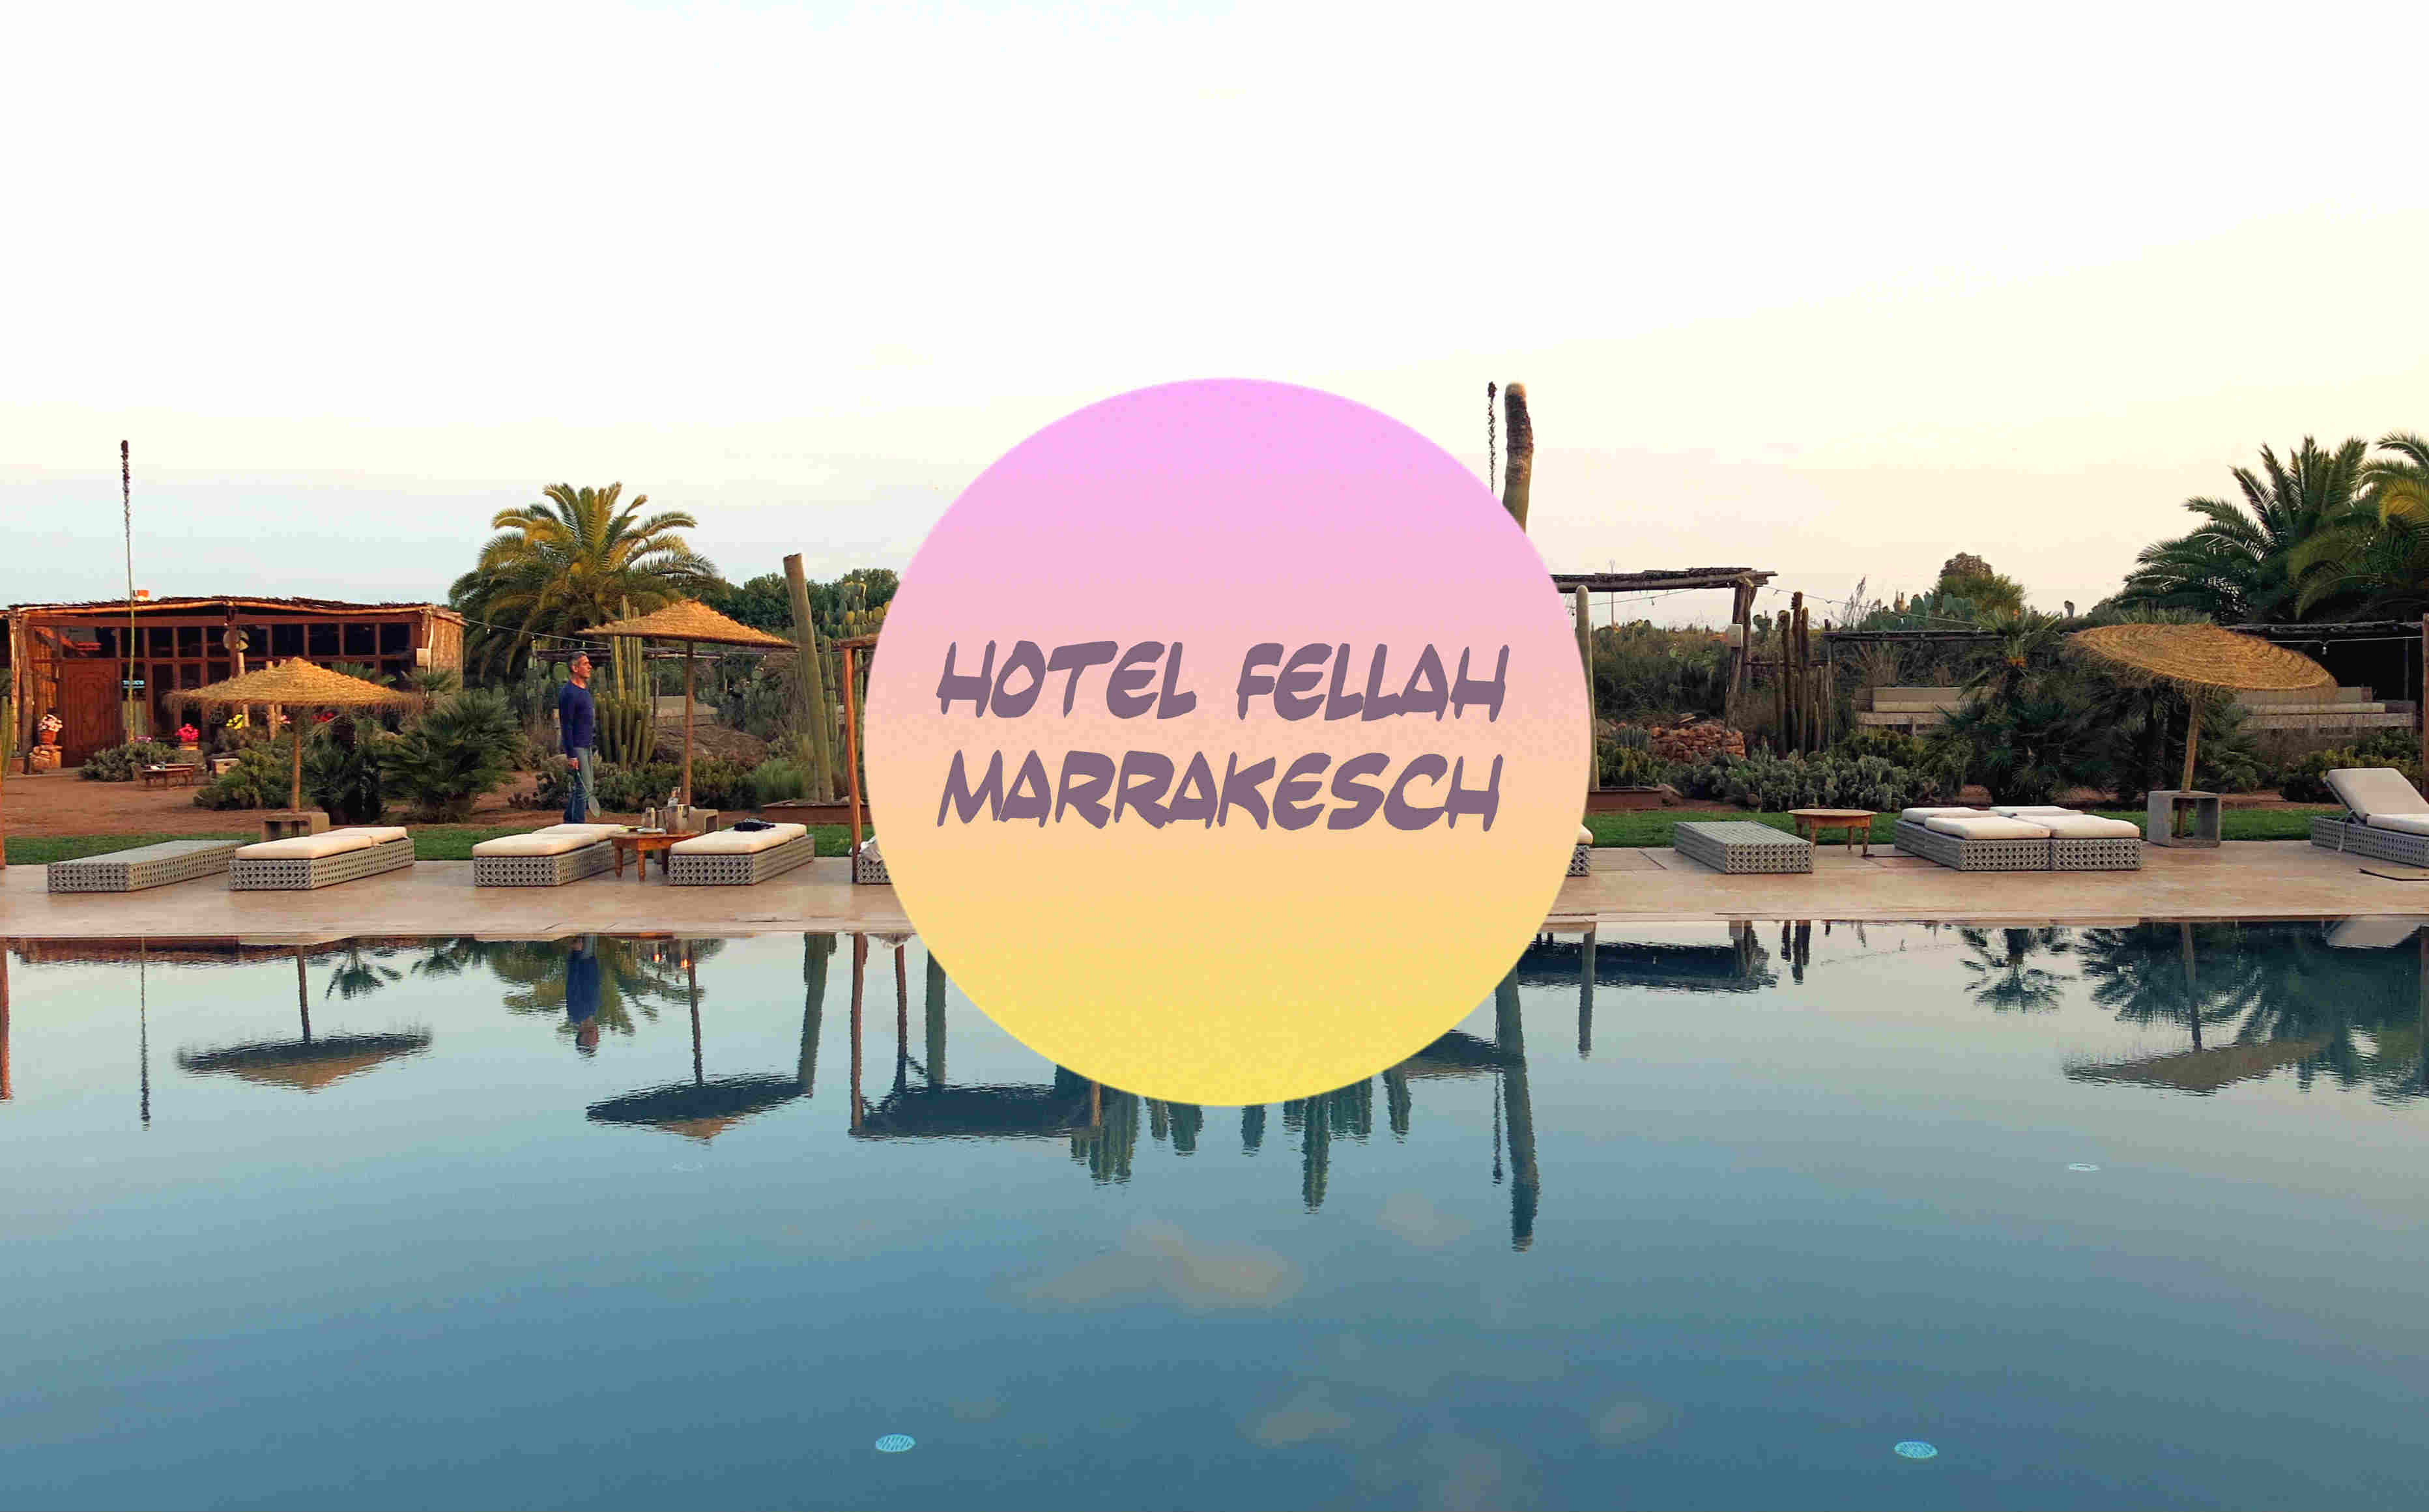 Hotel Fellah Marrakesch